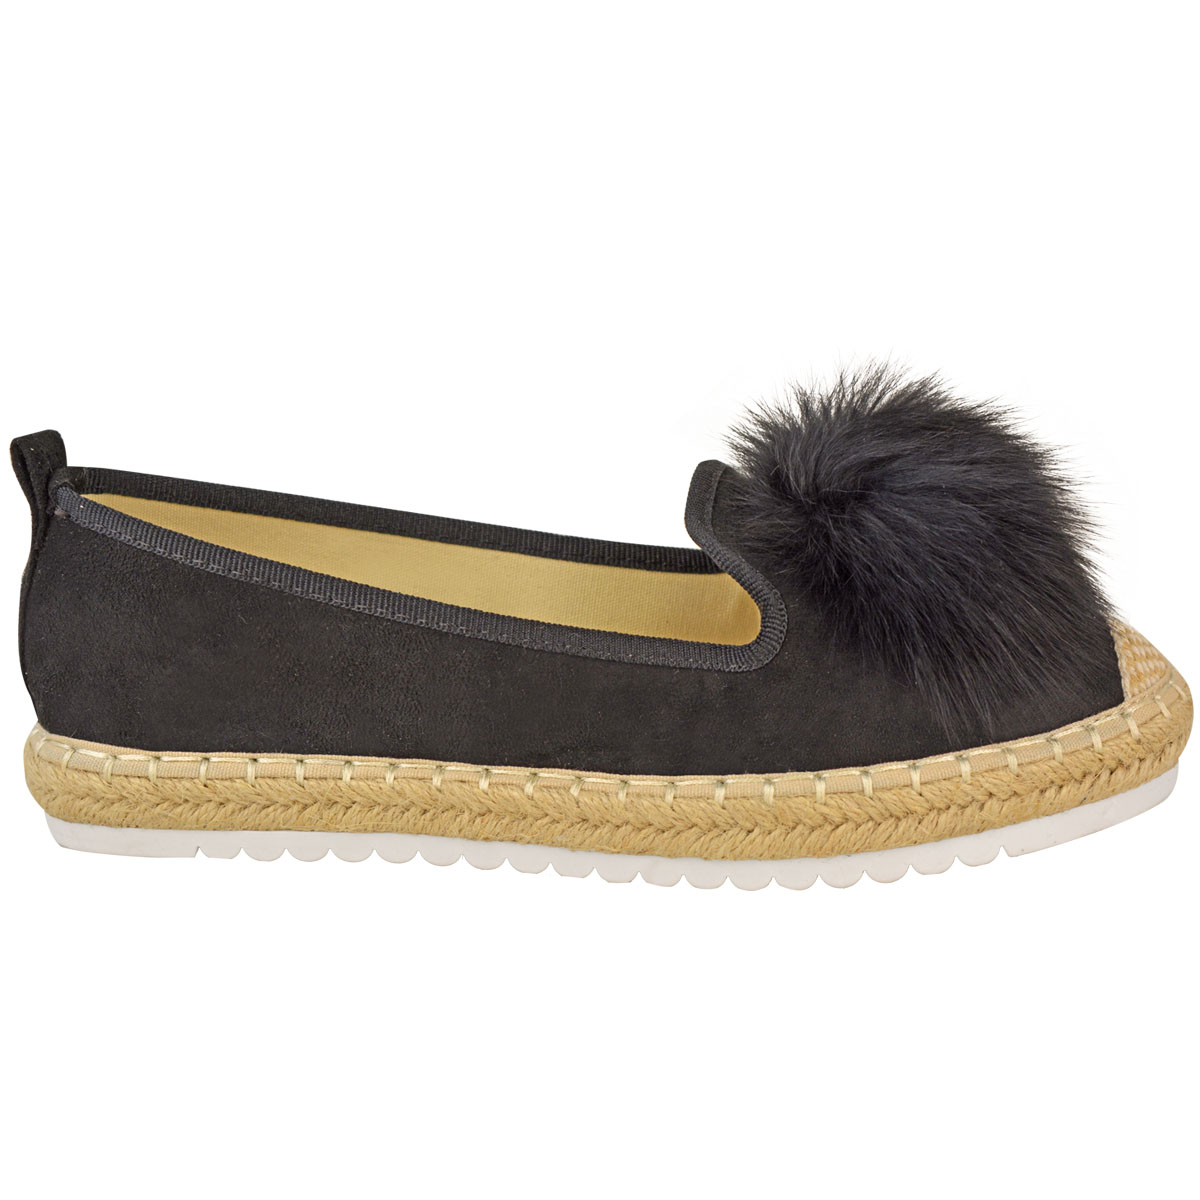 Womens-Ladies-Espadrilles-Flat-Pom-Pom-Sandals-Slip-On-Strappy-Comfy-Size-Shoes thumbnail 23